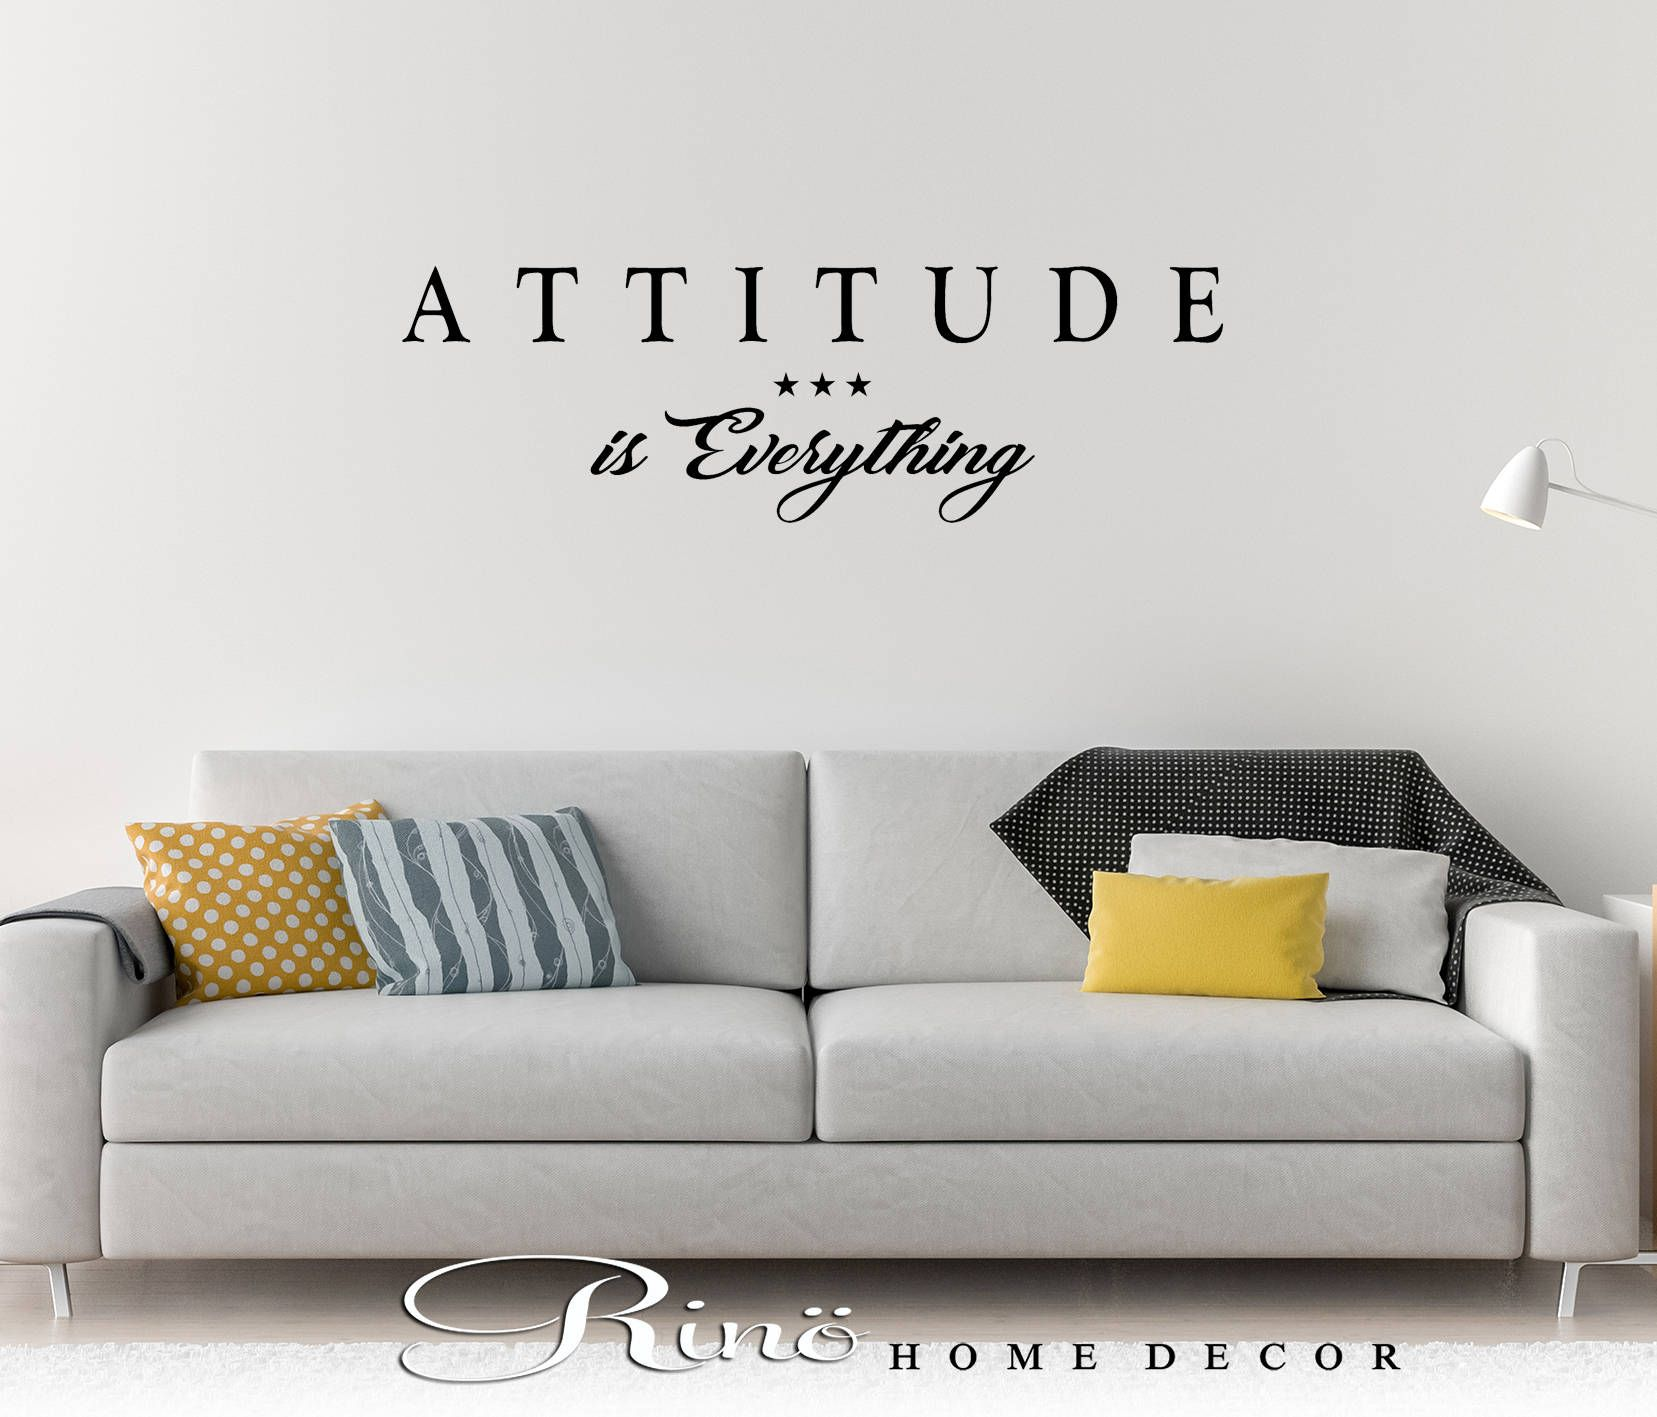 Attitude is everything wall decal wall quote vinyl lettering sticker